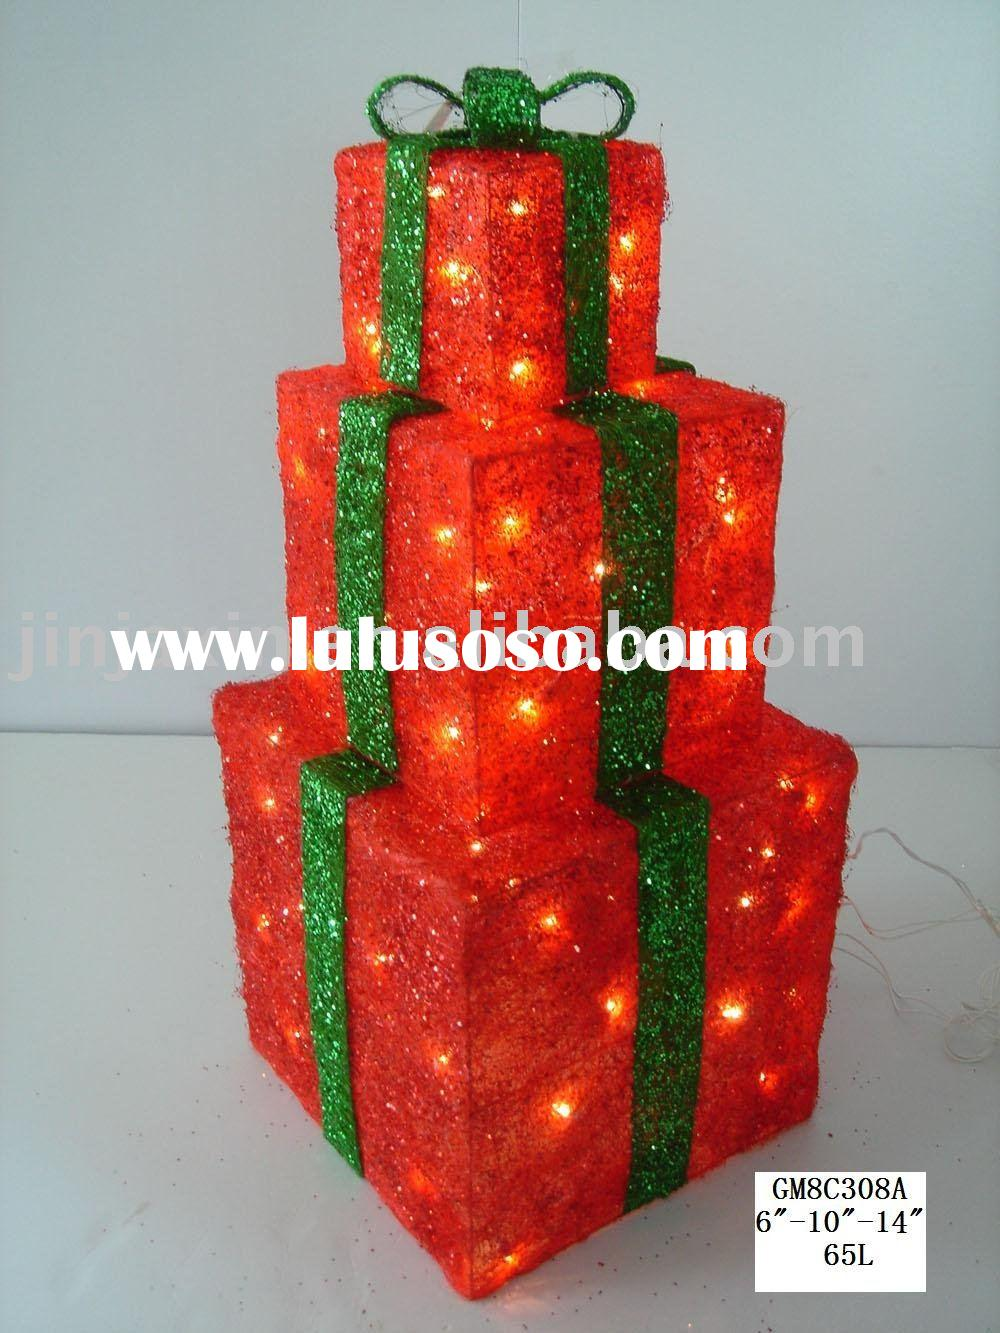 Lighted Gift Boxes Christmas Decorations Christmas Gift Box With Lights